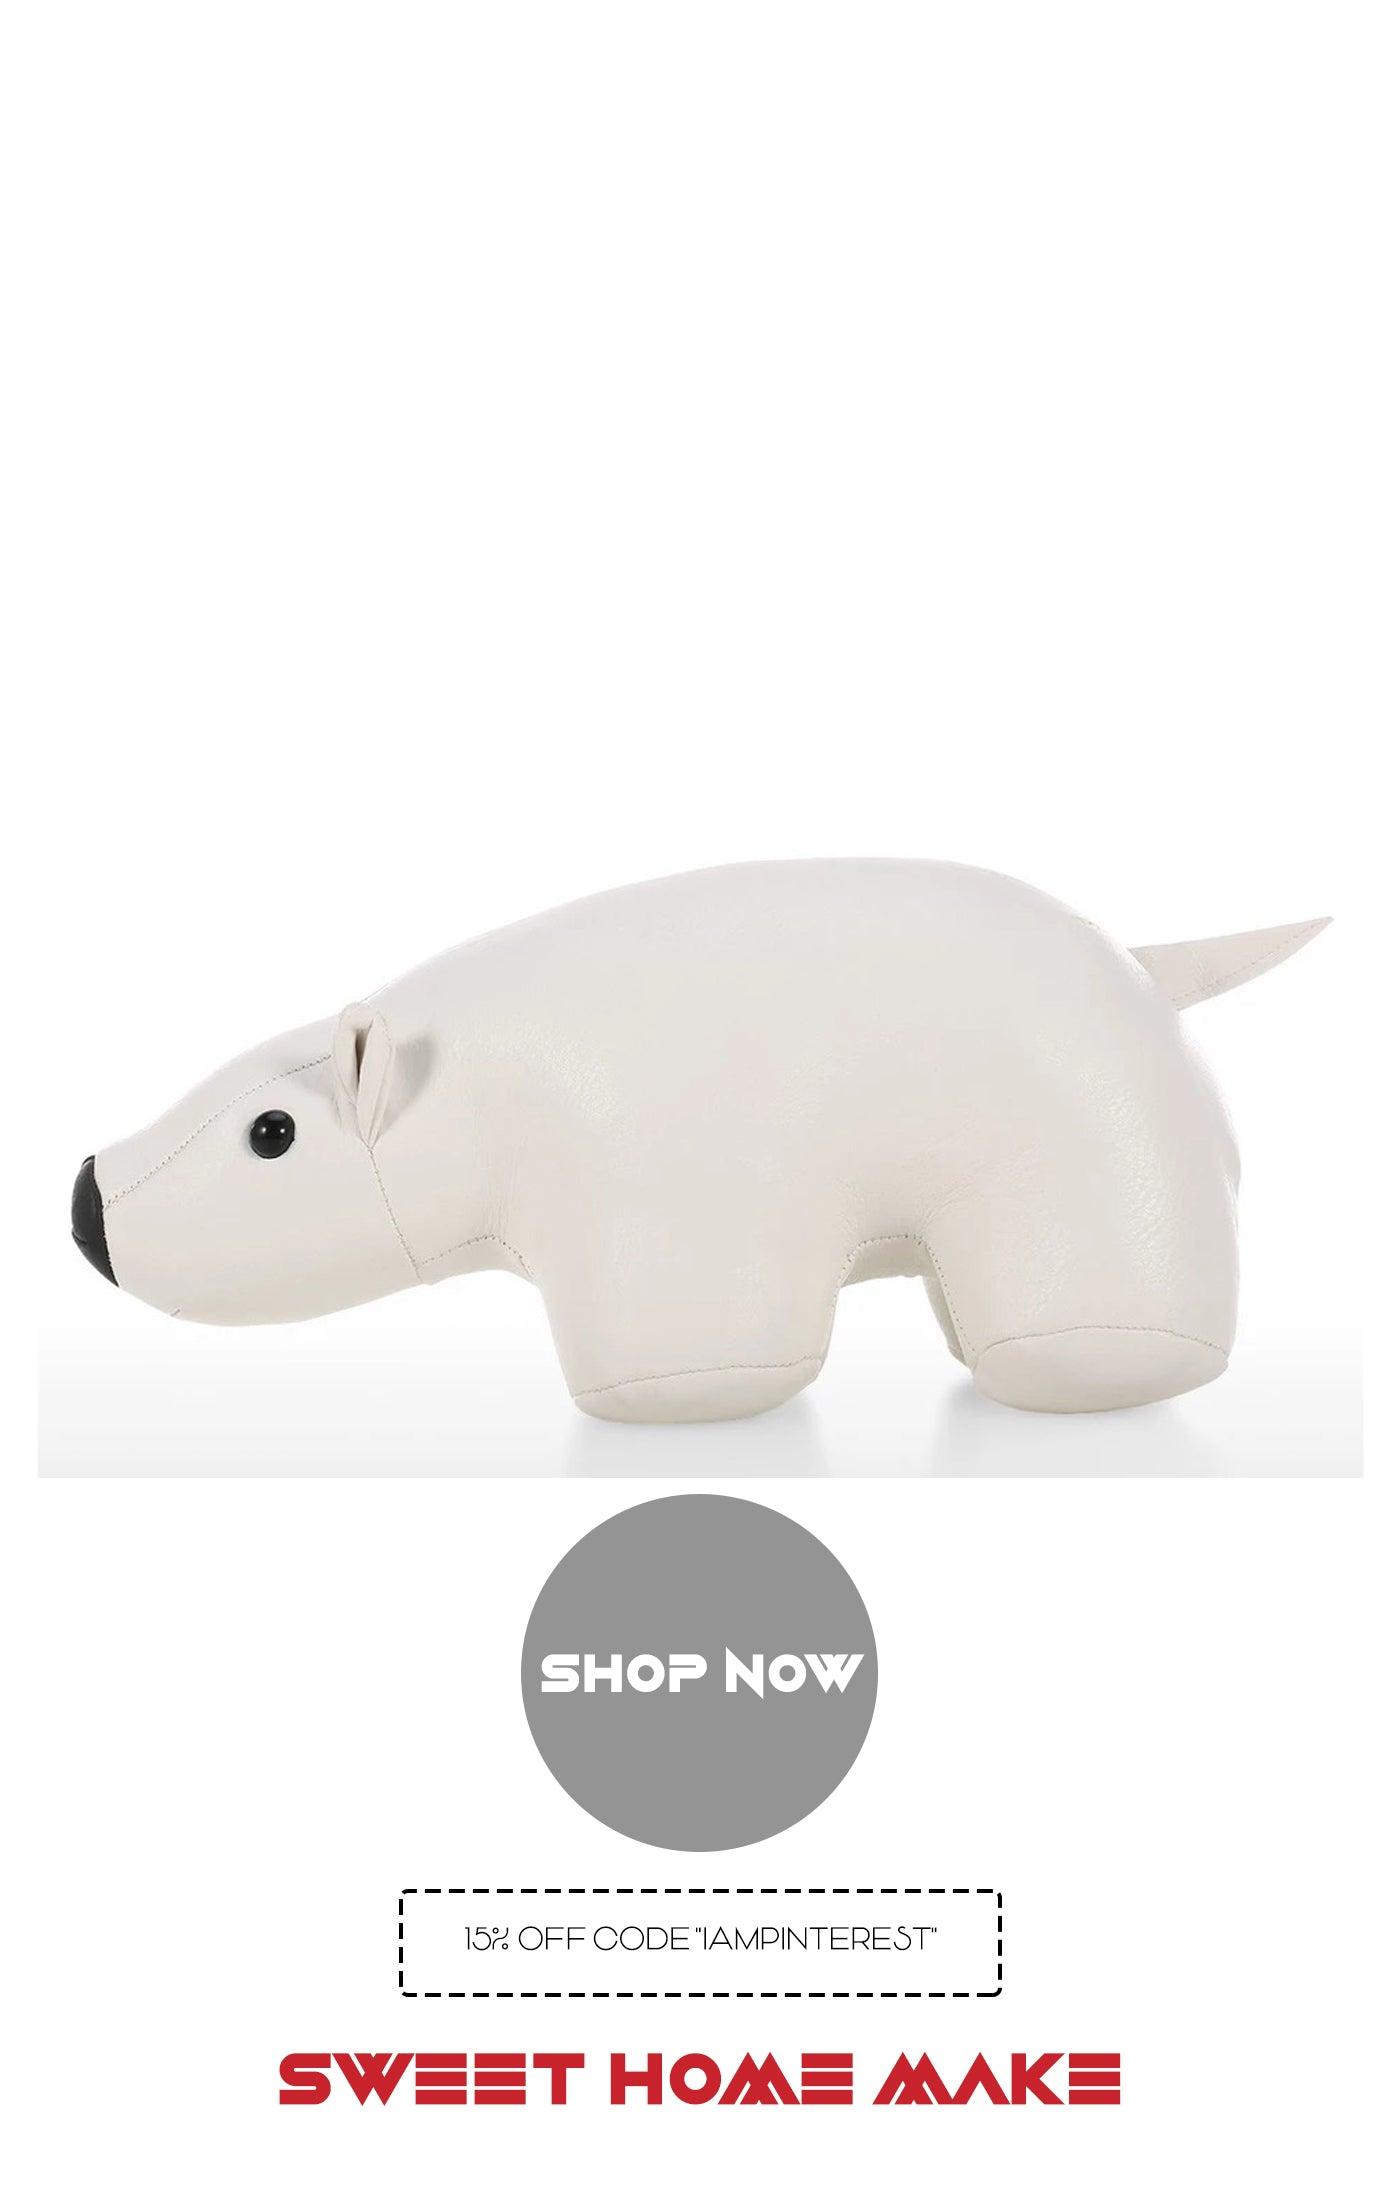 White Bear Toys For Nursery and Kids as Online Store